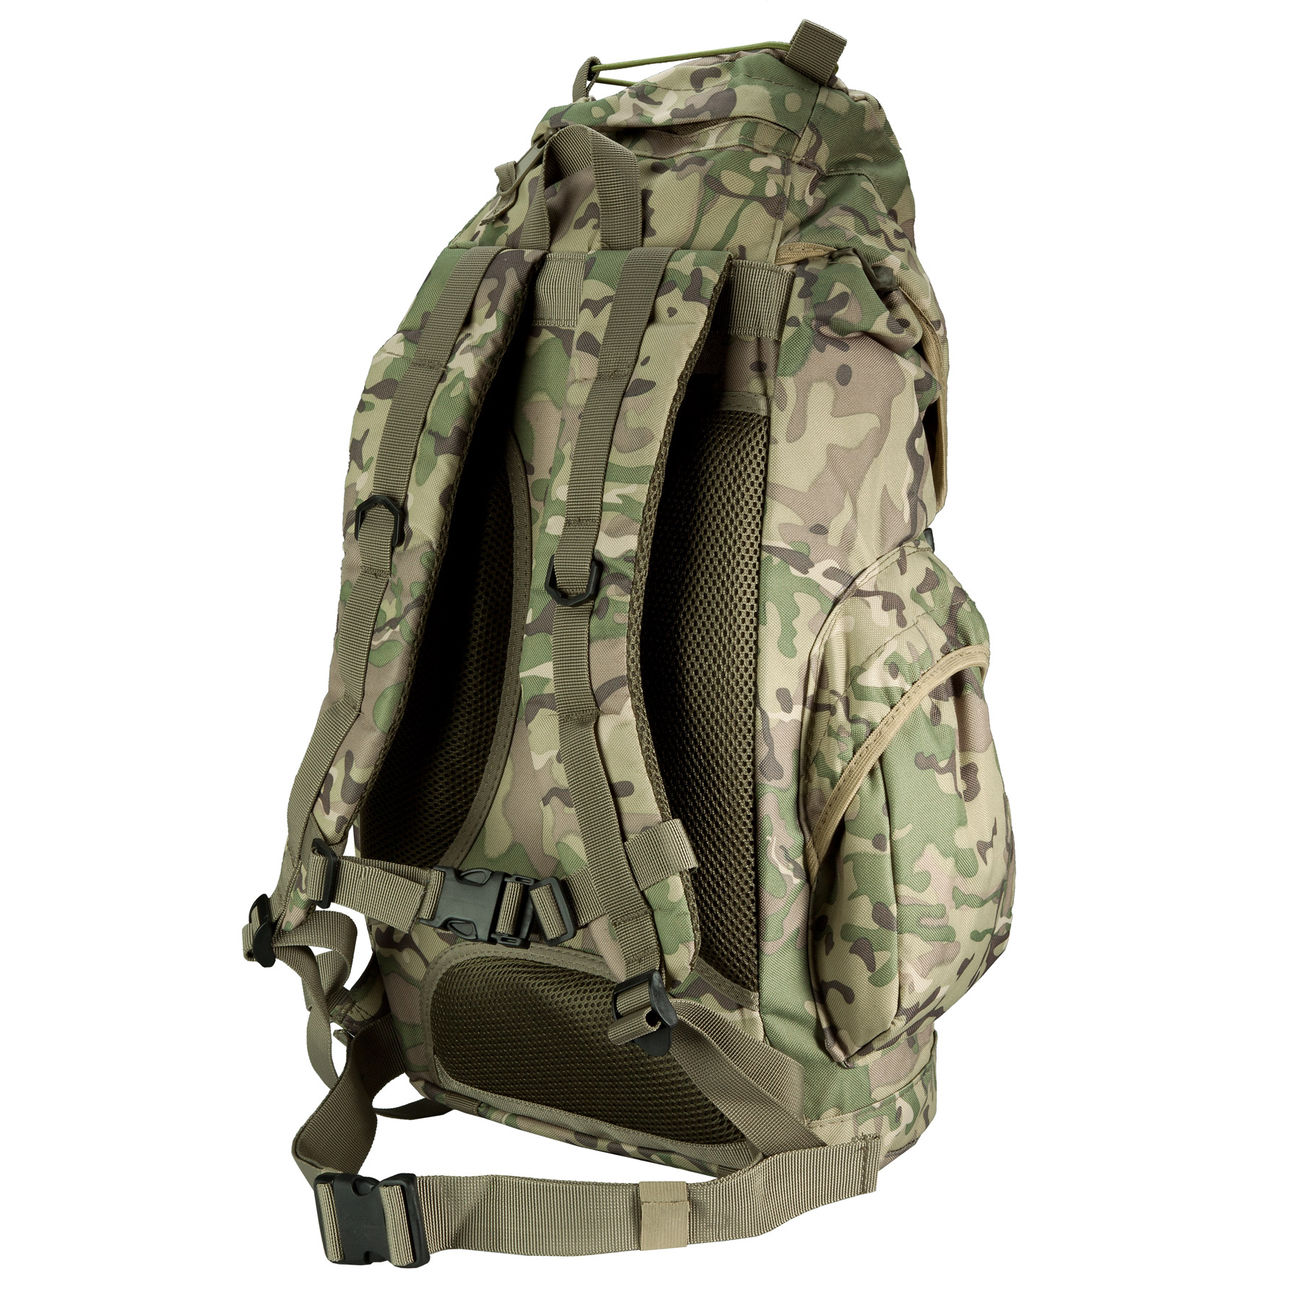 MFH Rucksack Recon III operation-camo 3